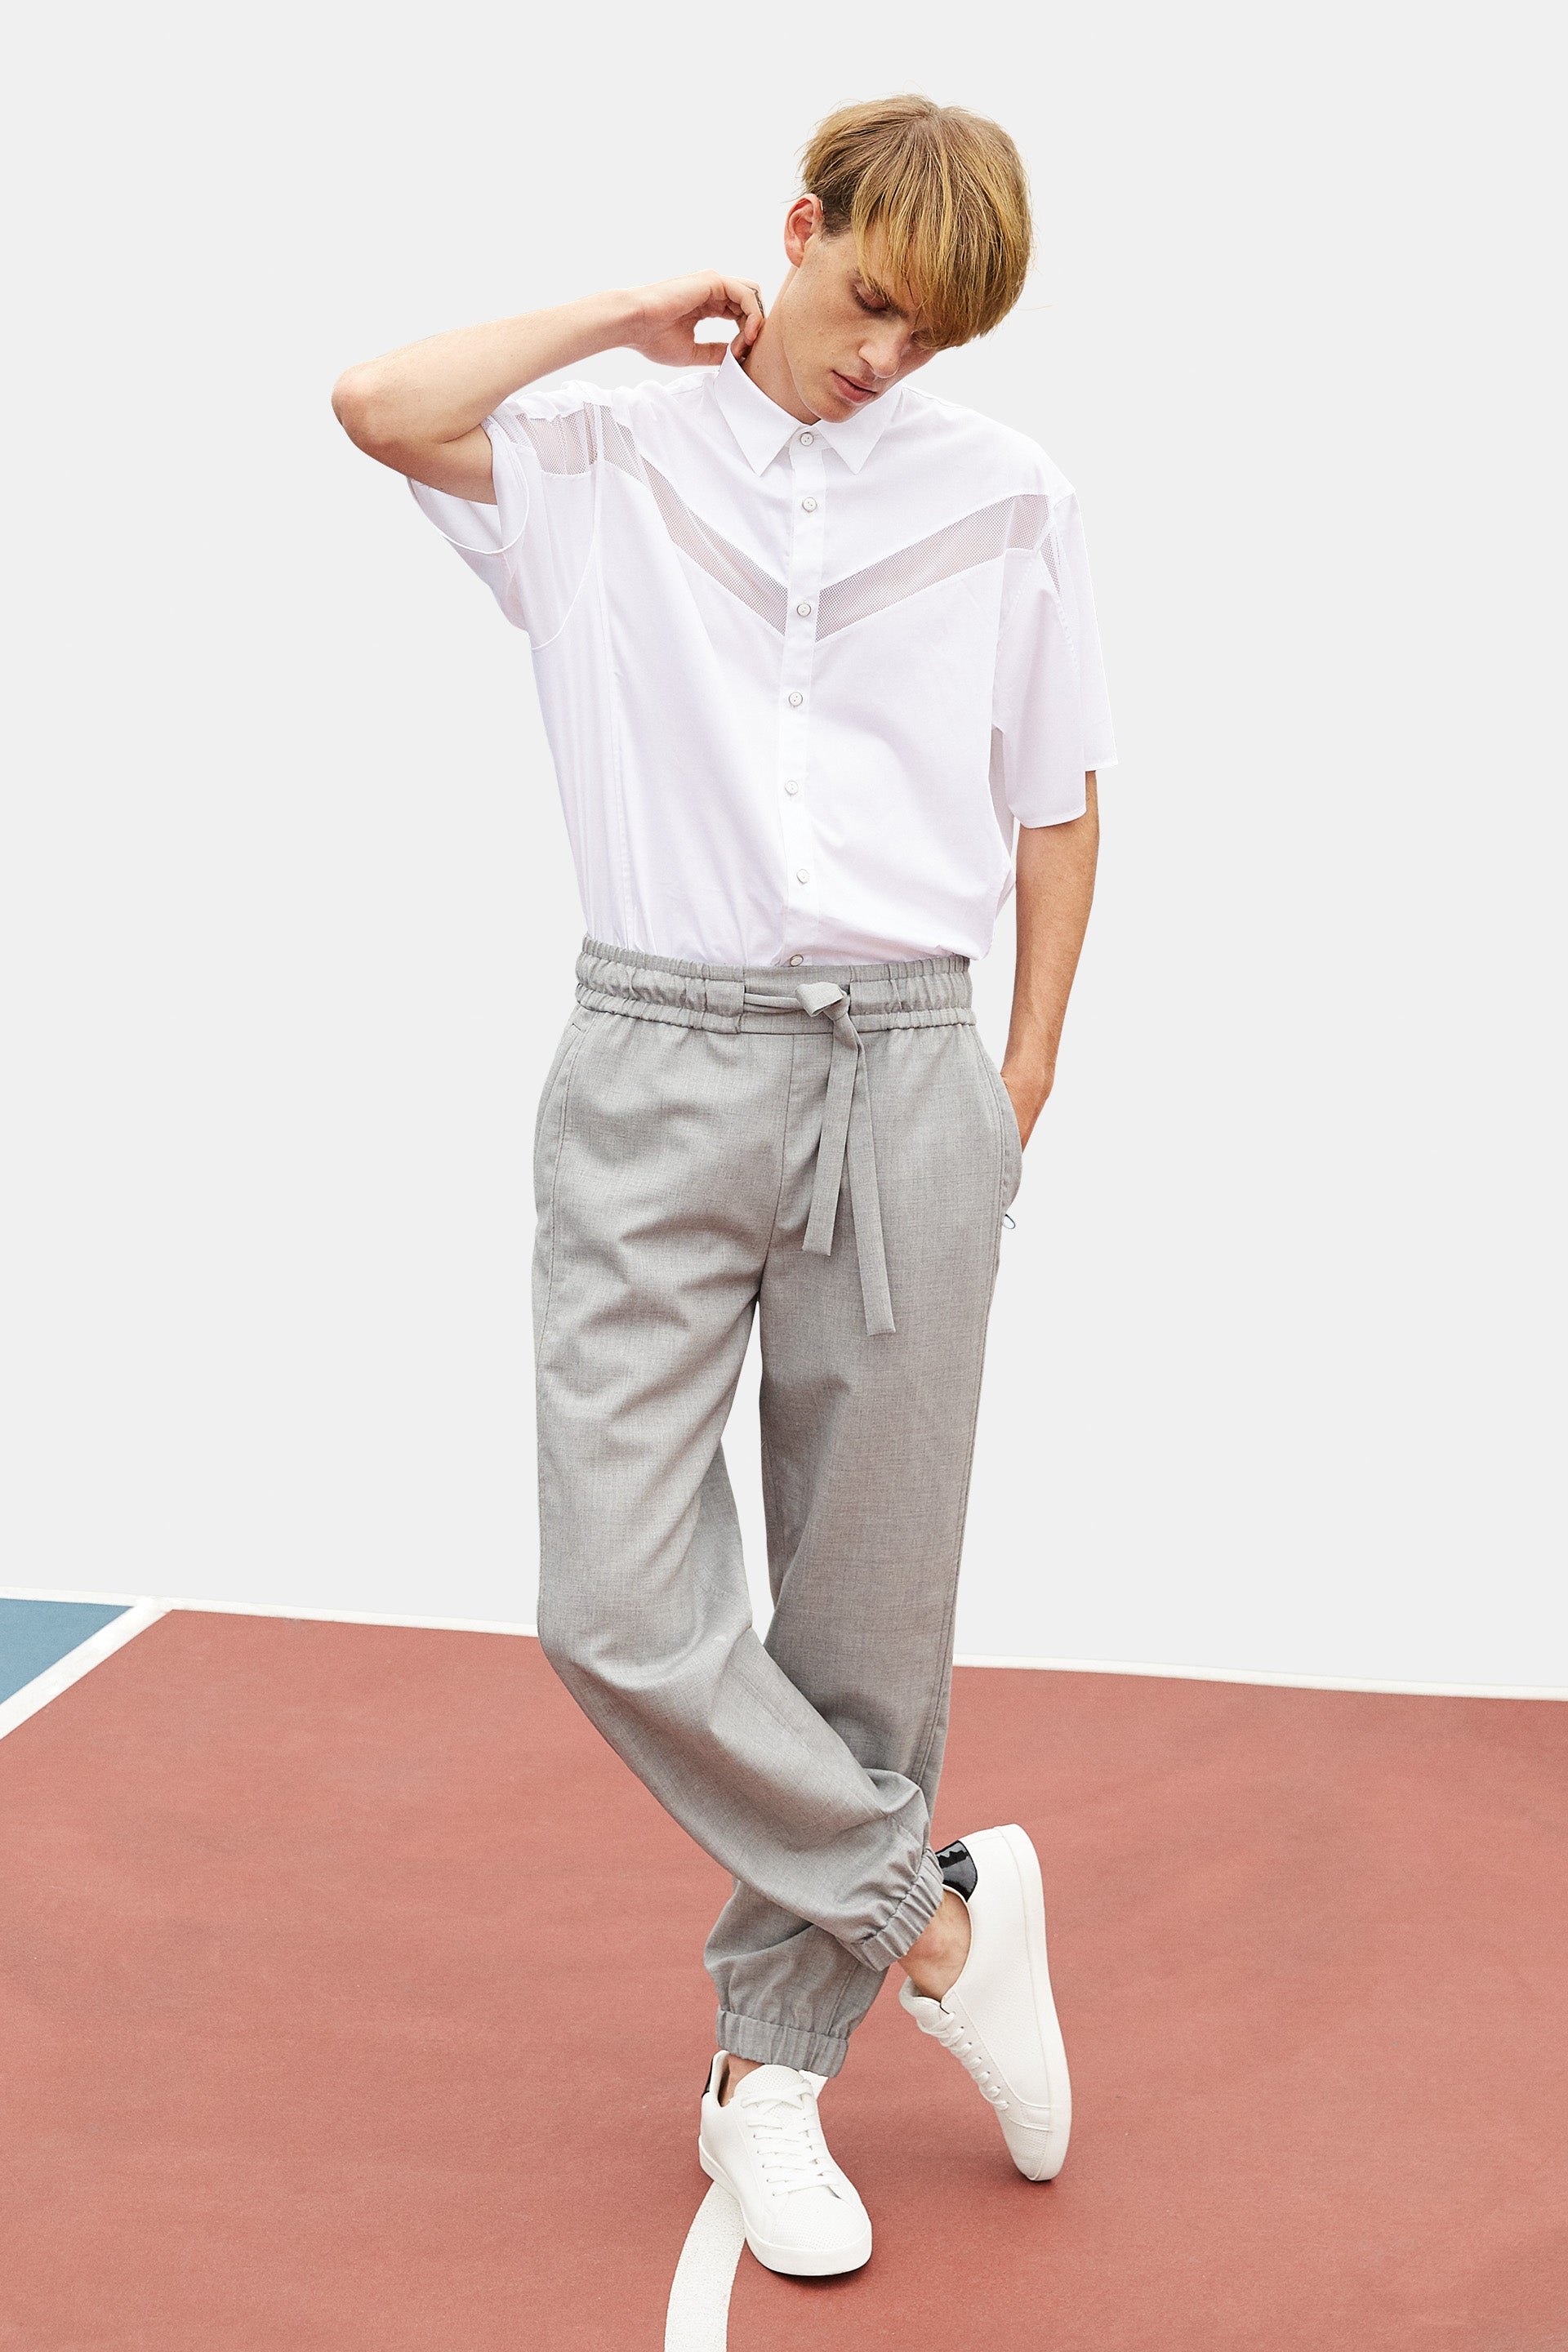 SEANNUNG - 灰色縮口西裝褲 Tailored Jogger pants in Grey - Men